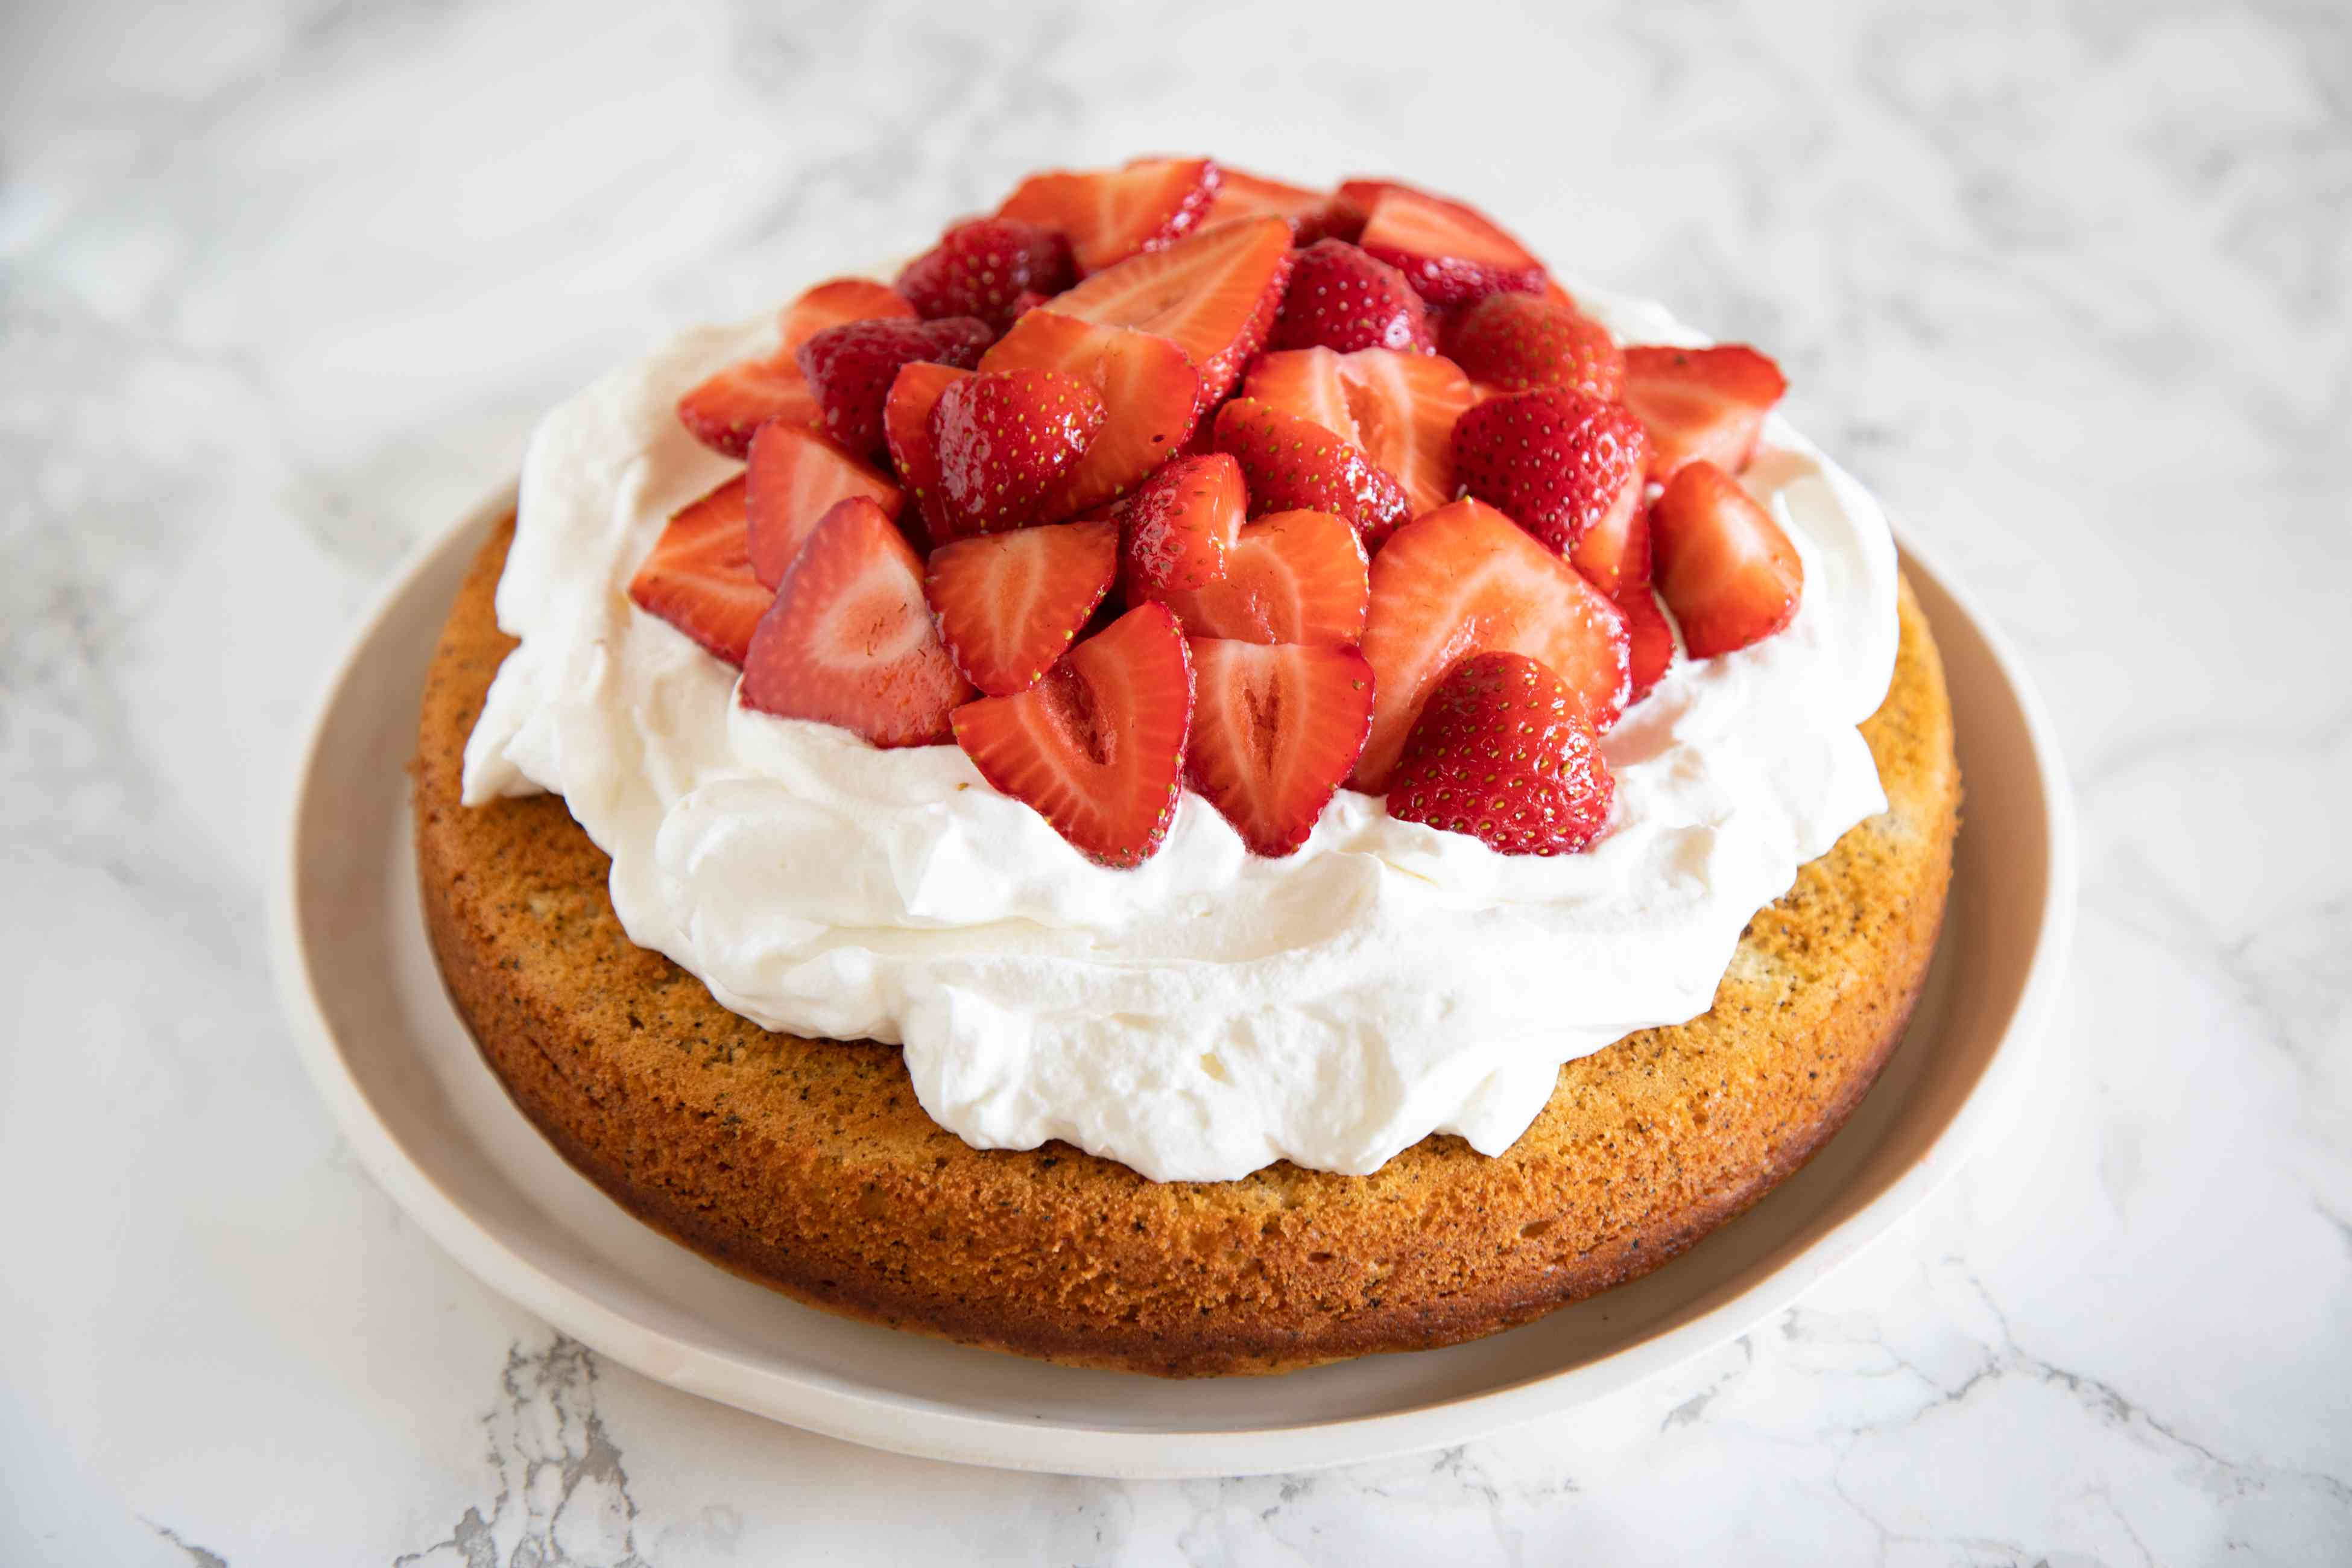 Earl Grey Tea Yogurt Cake topped with whipped cream and strawberries and set on a platter.